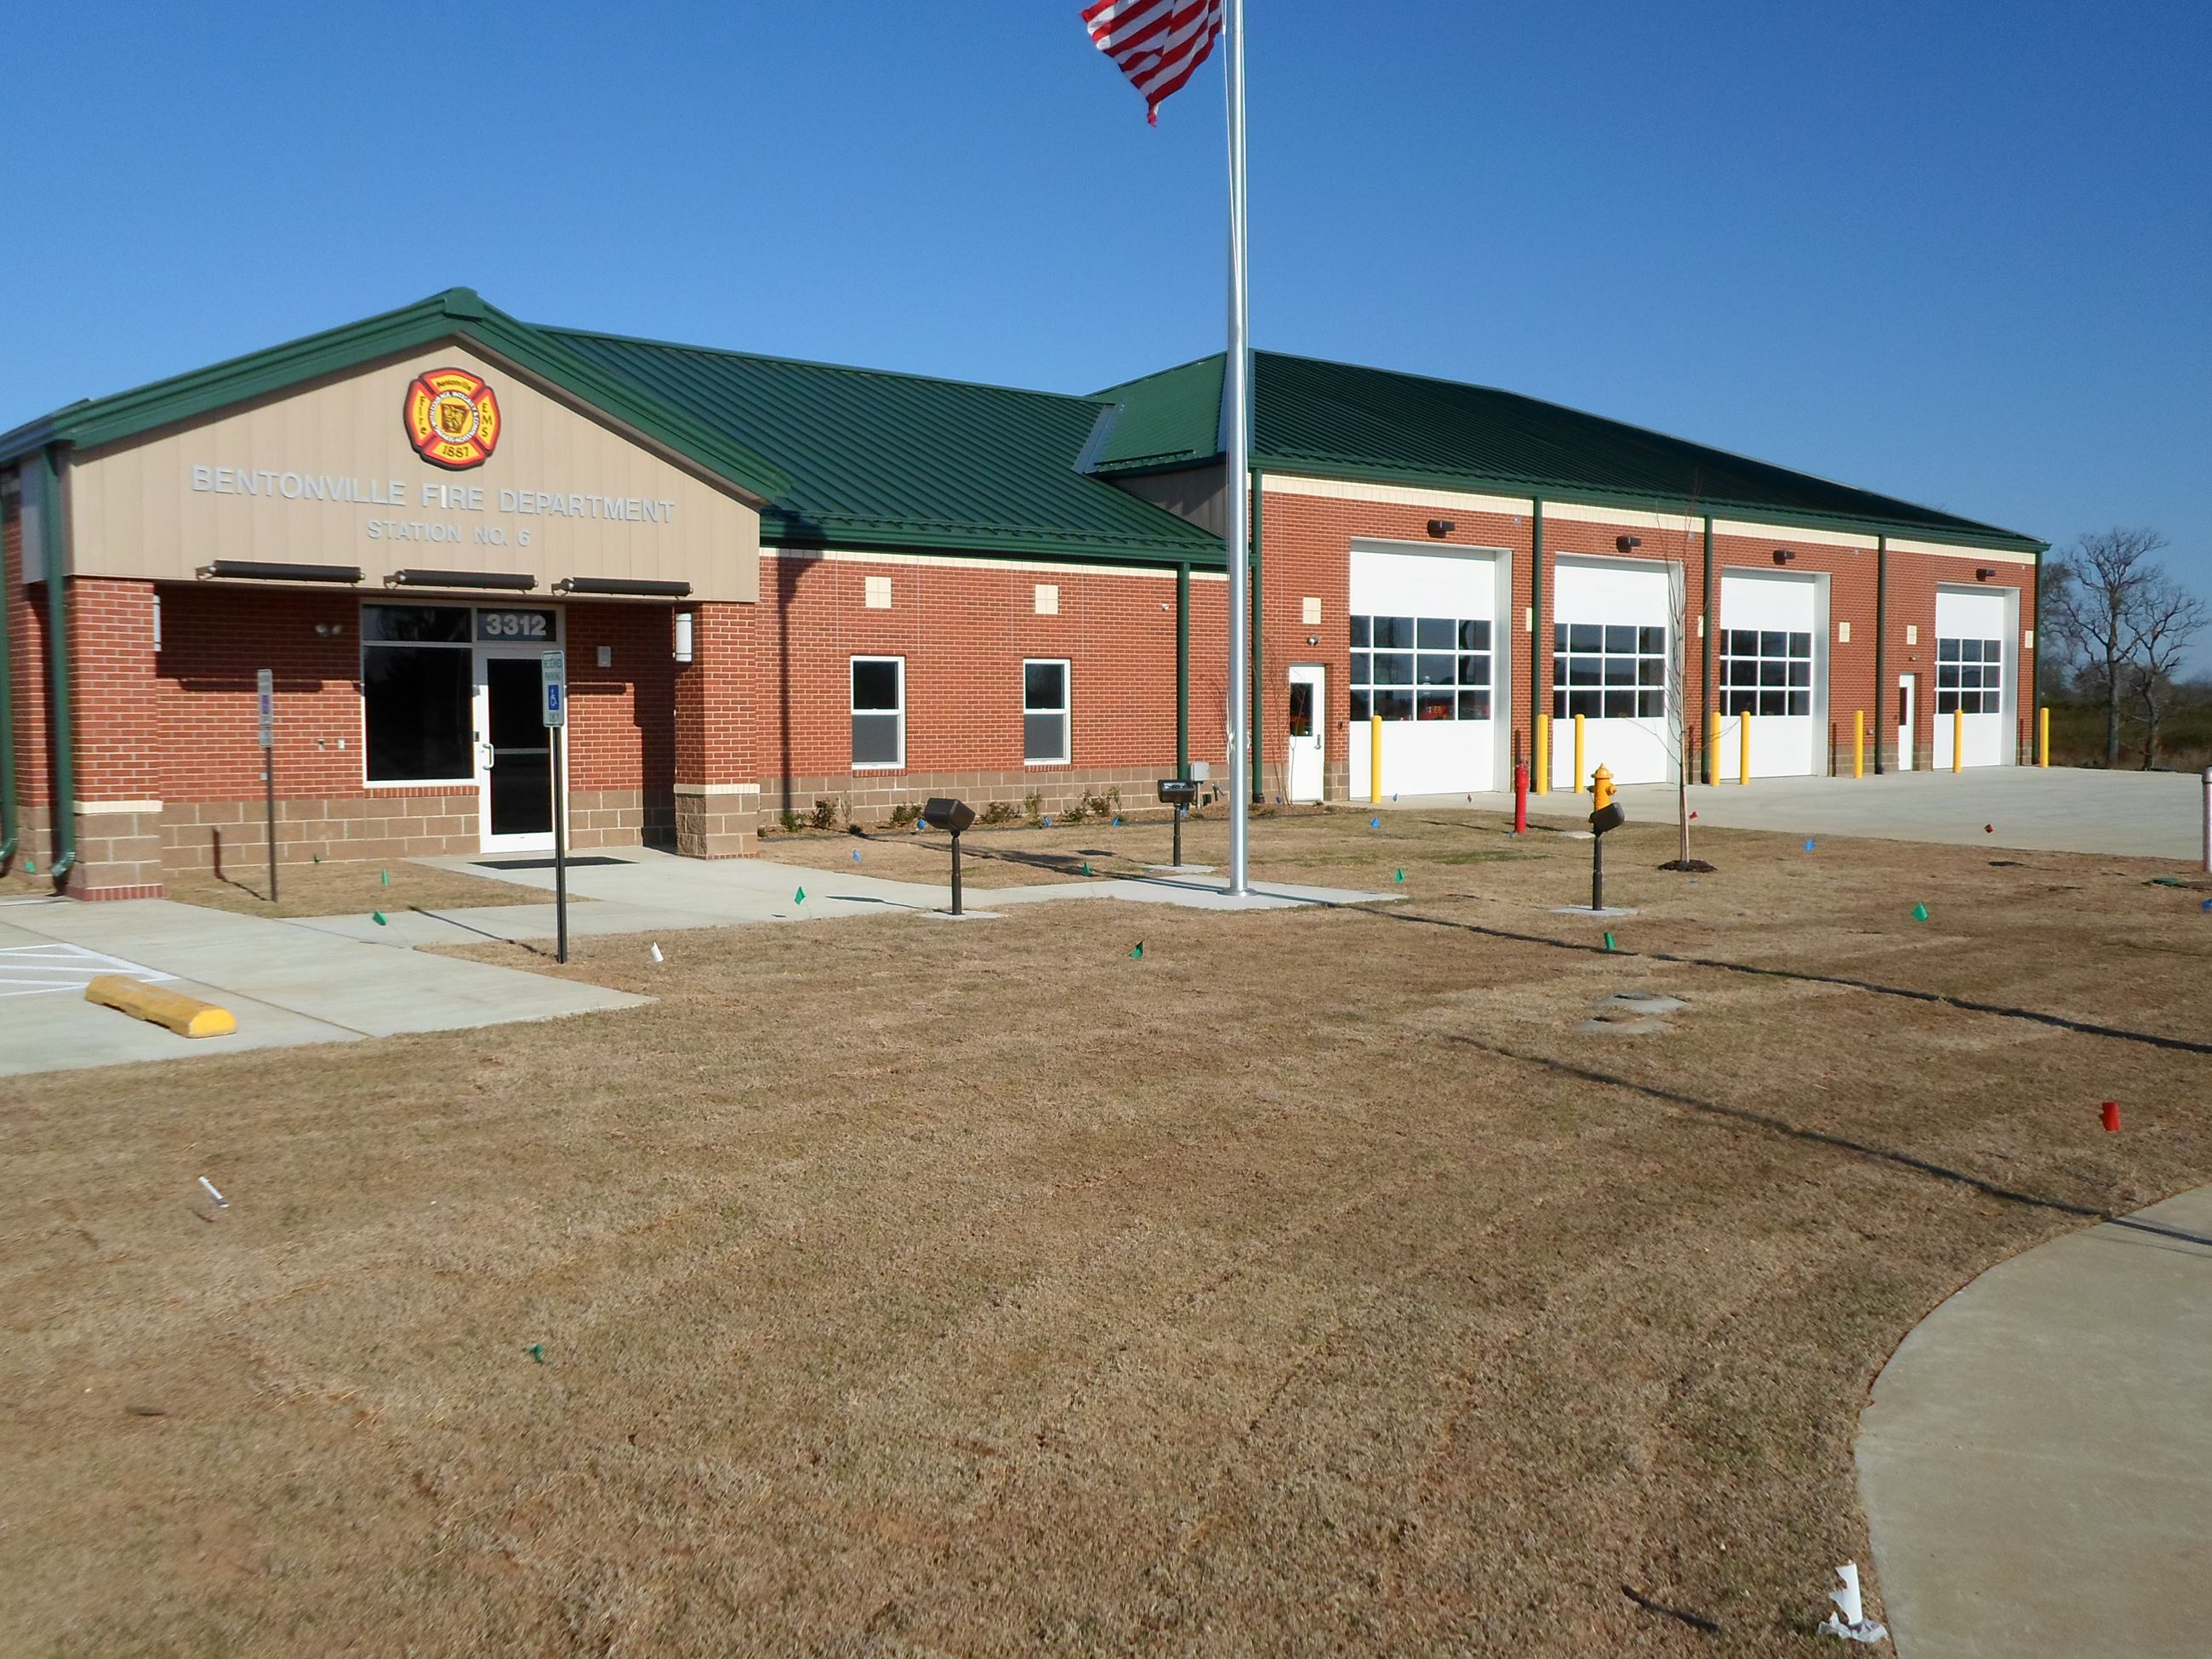 Station 6 with lawn and four bays